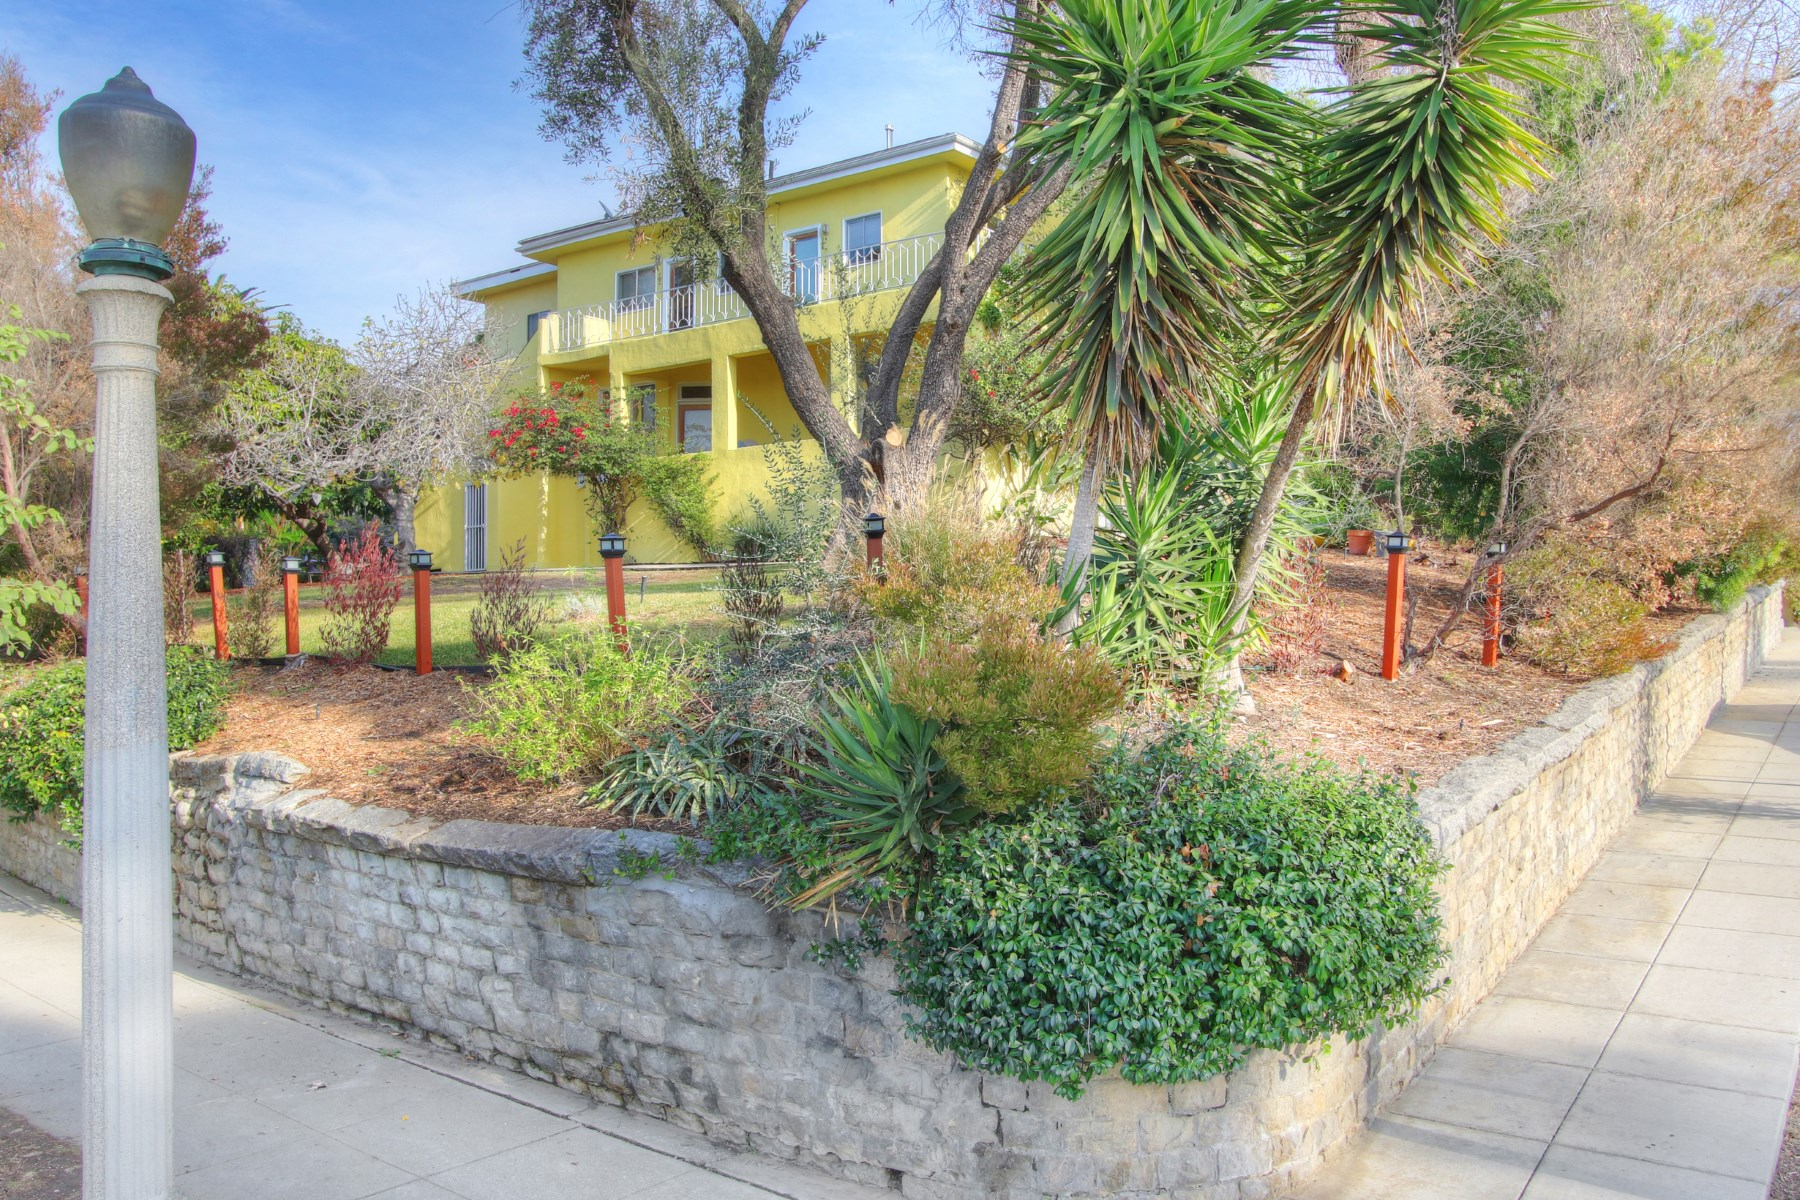 Multi-Family Home for Sale at 1461 Carroll Avenue Silver Lake, Los Angeles, California 90026 United States